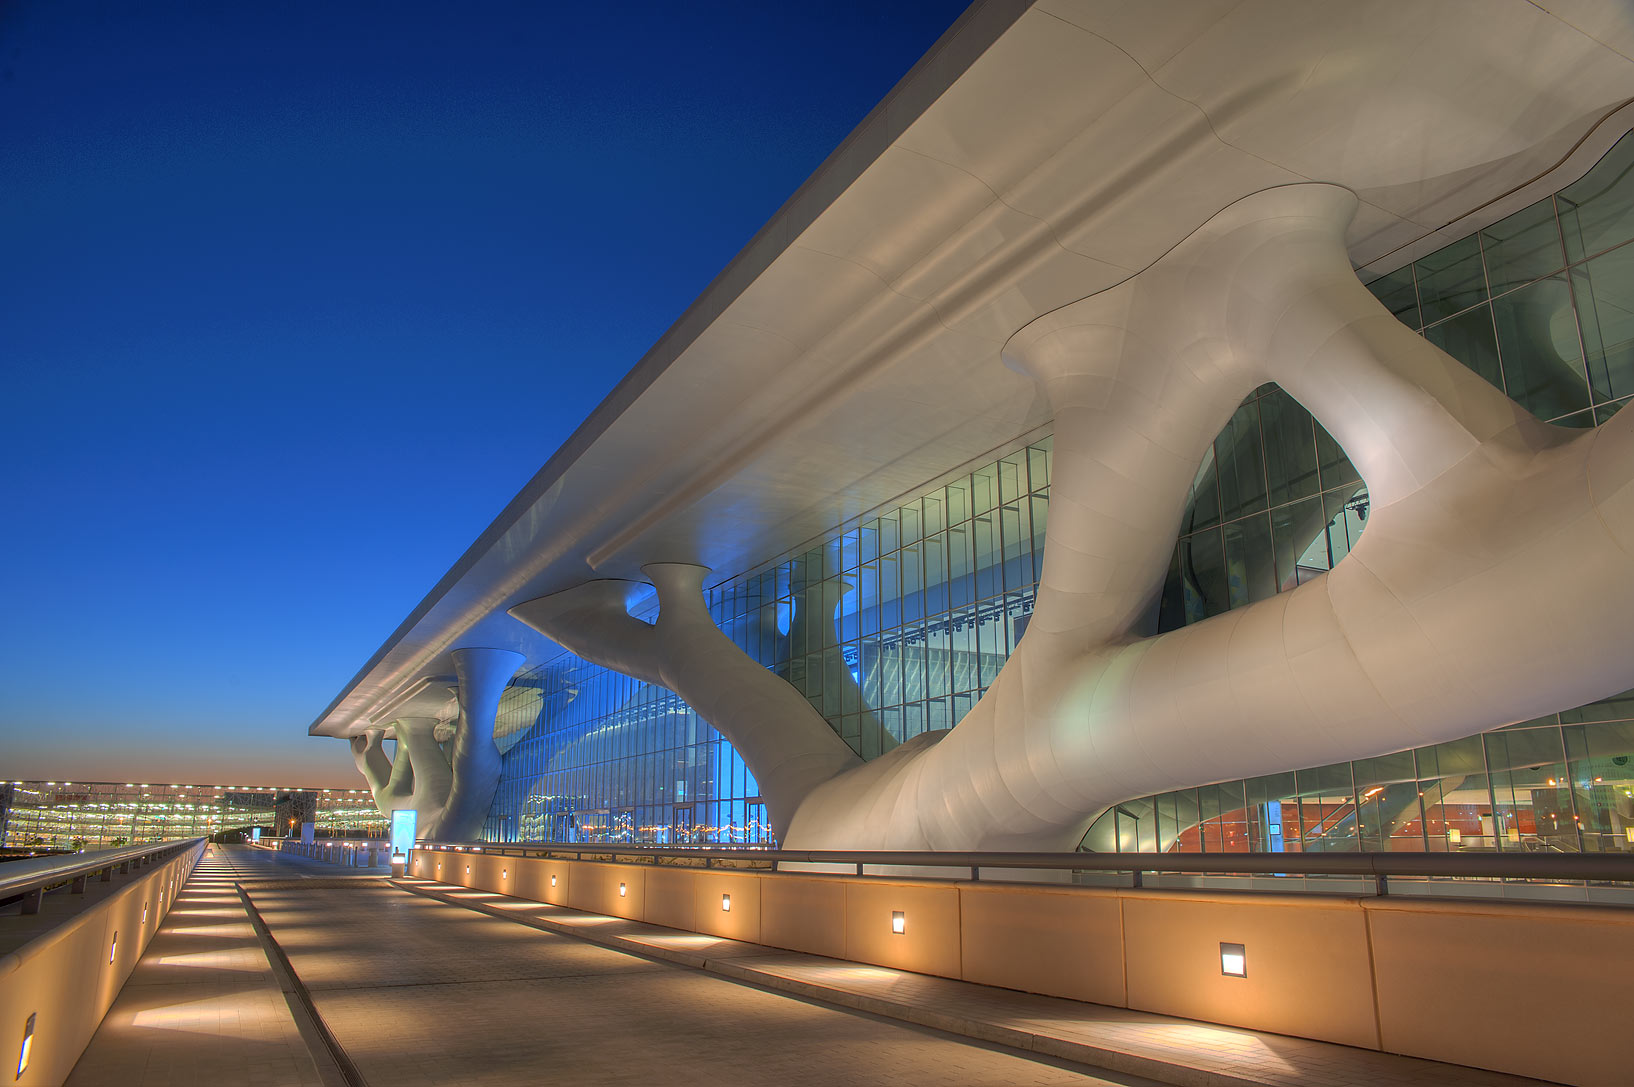 Service road of National Convention Centre (QNCC). Doha, Qatar